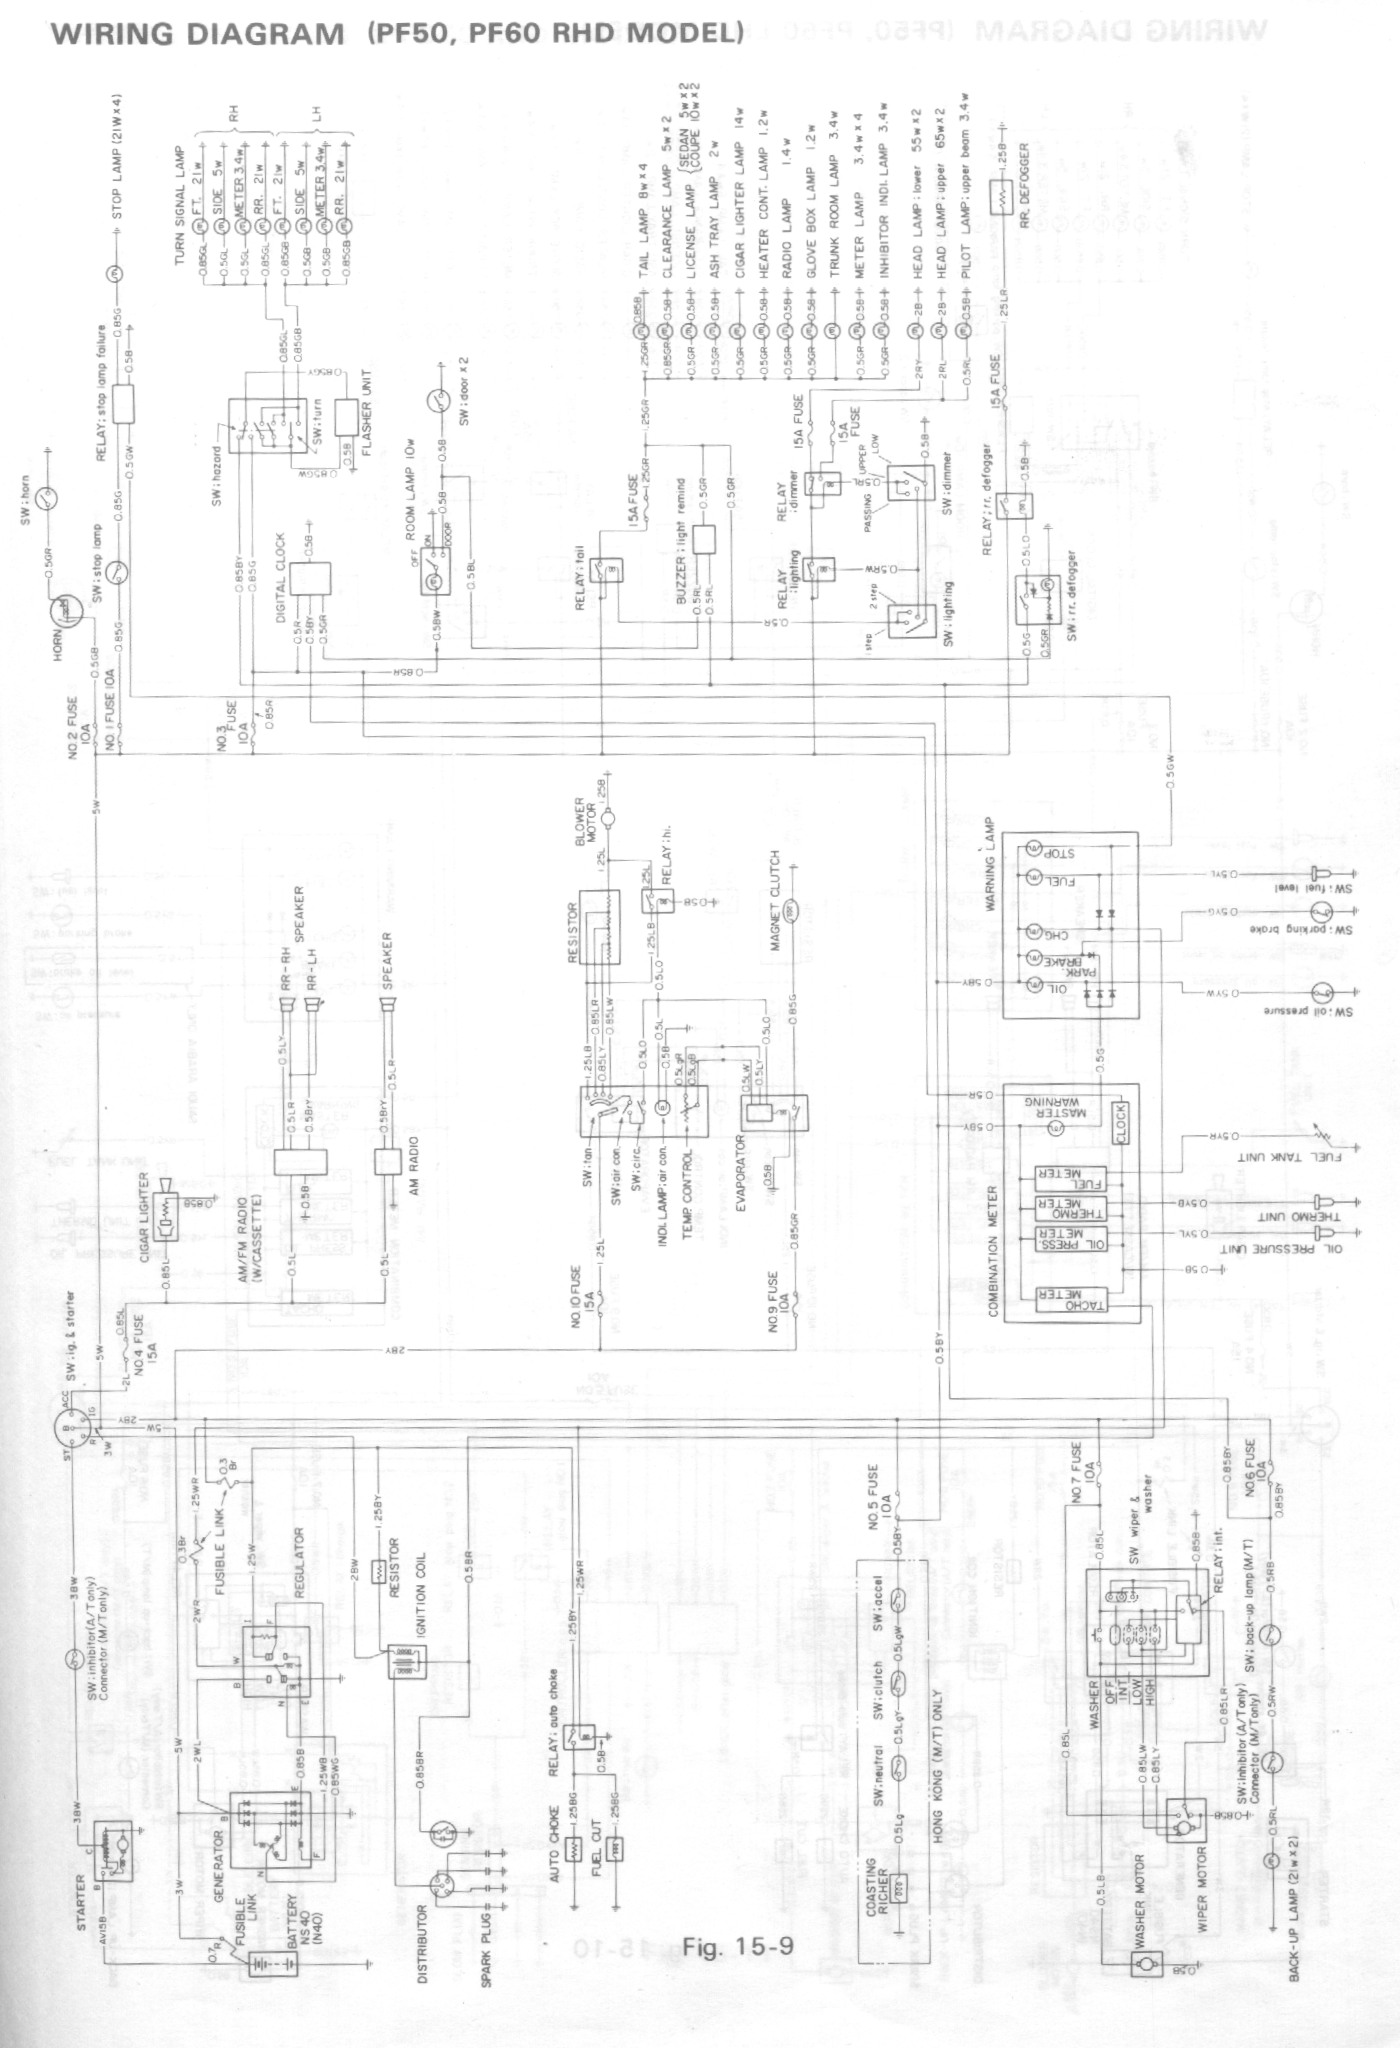 Wiring Diagram PDF: 2003 Isuzu Npr Wiring Diagram